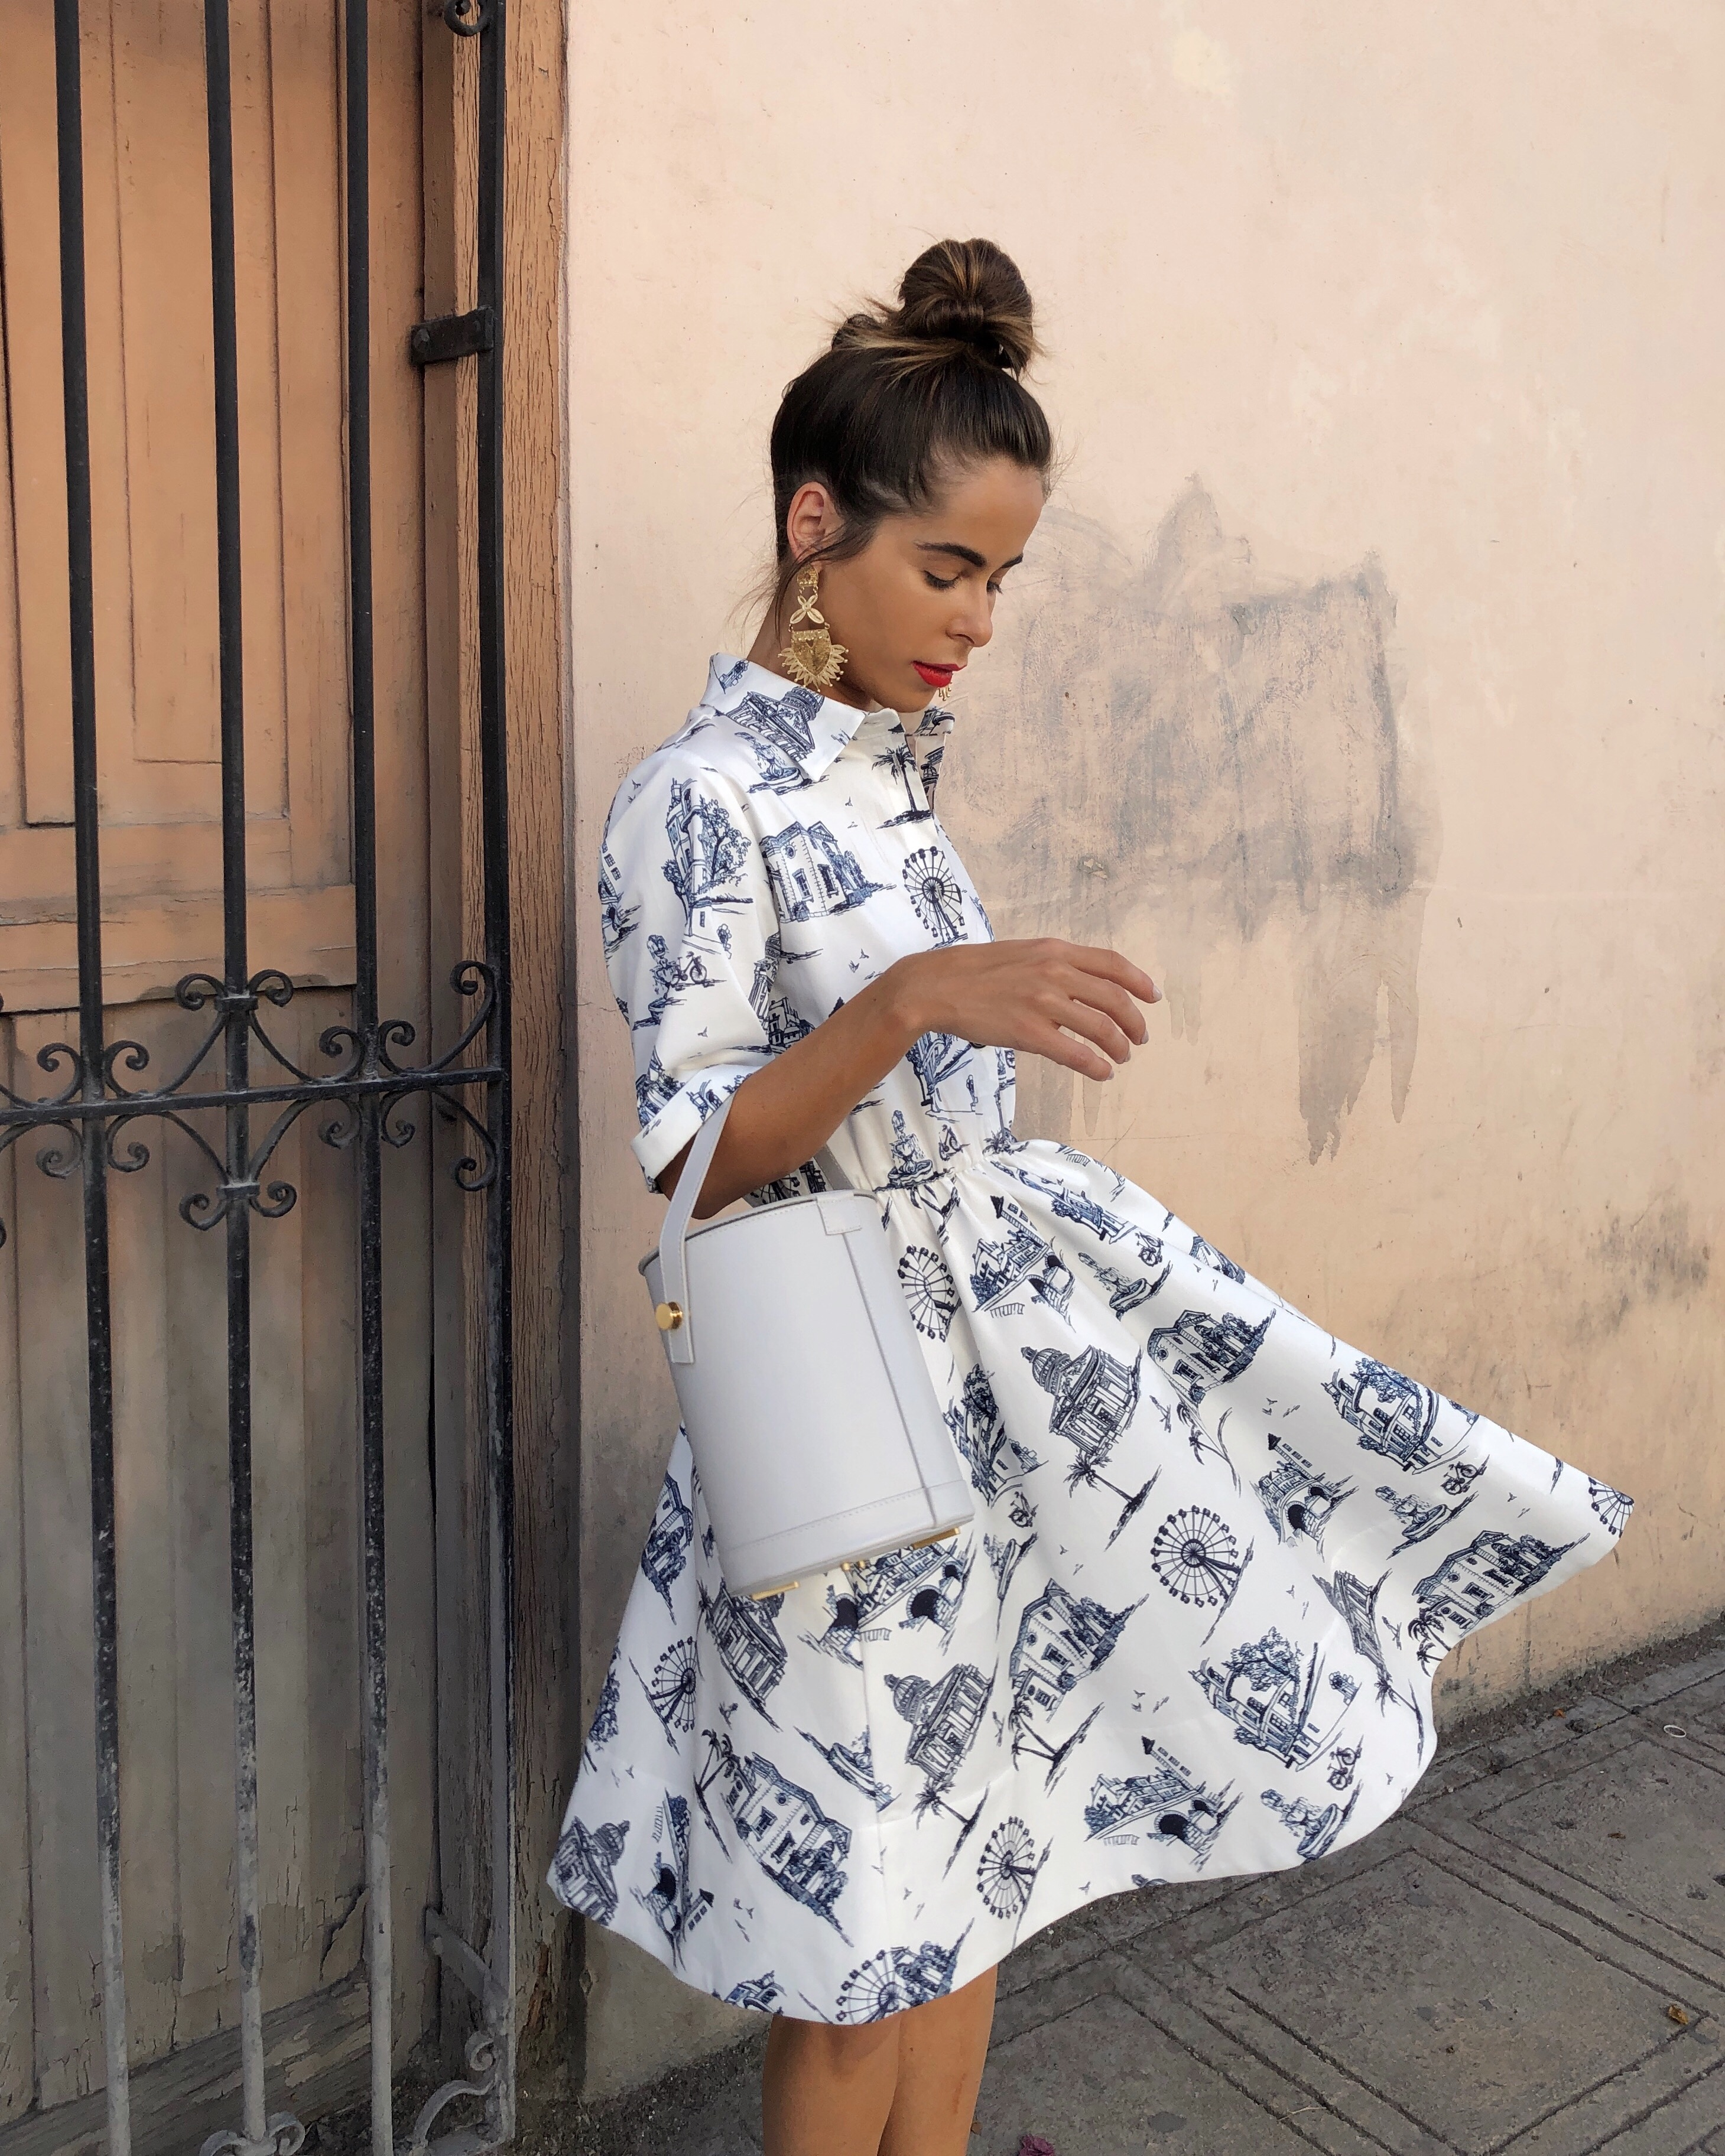 Style Blogger Stephanie Hill from The Style Bungalow wears ootd featuring Maje dress